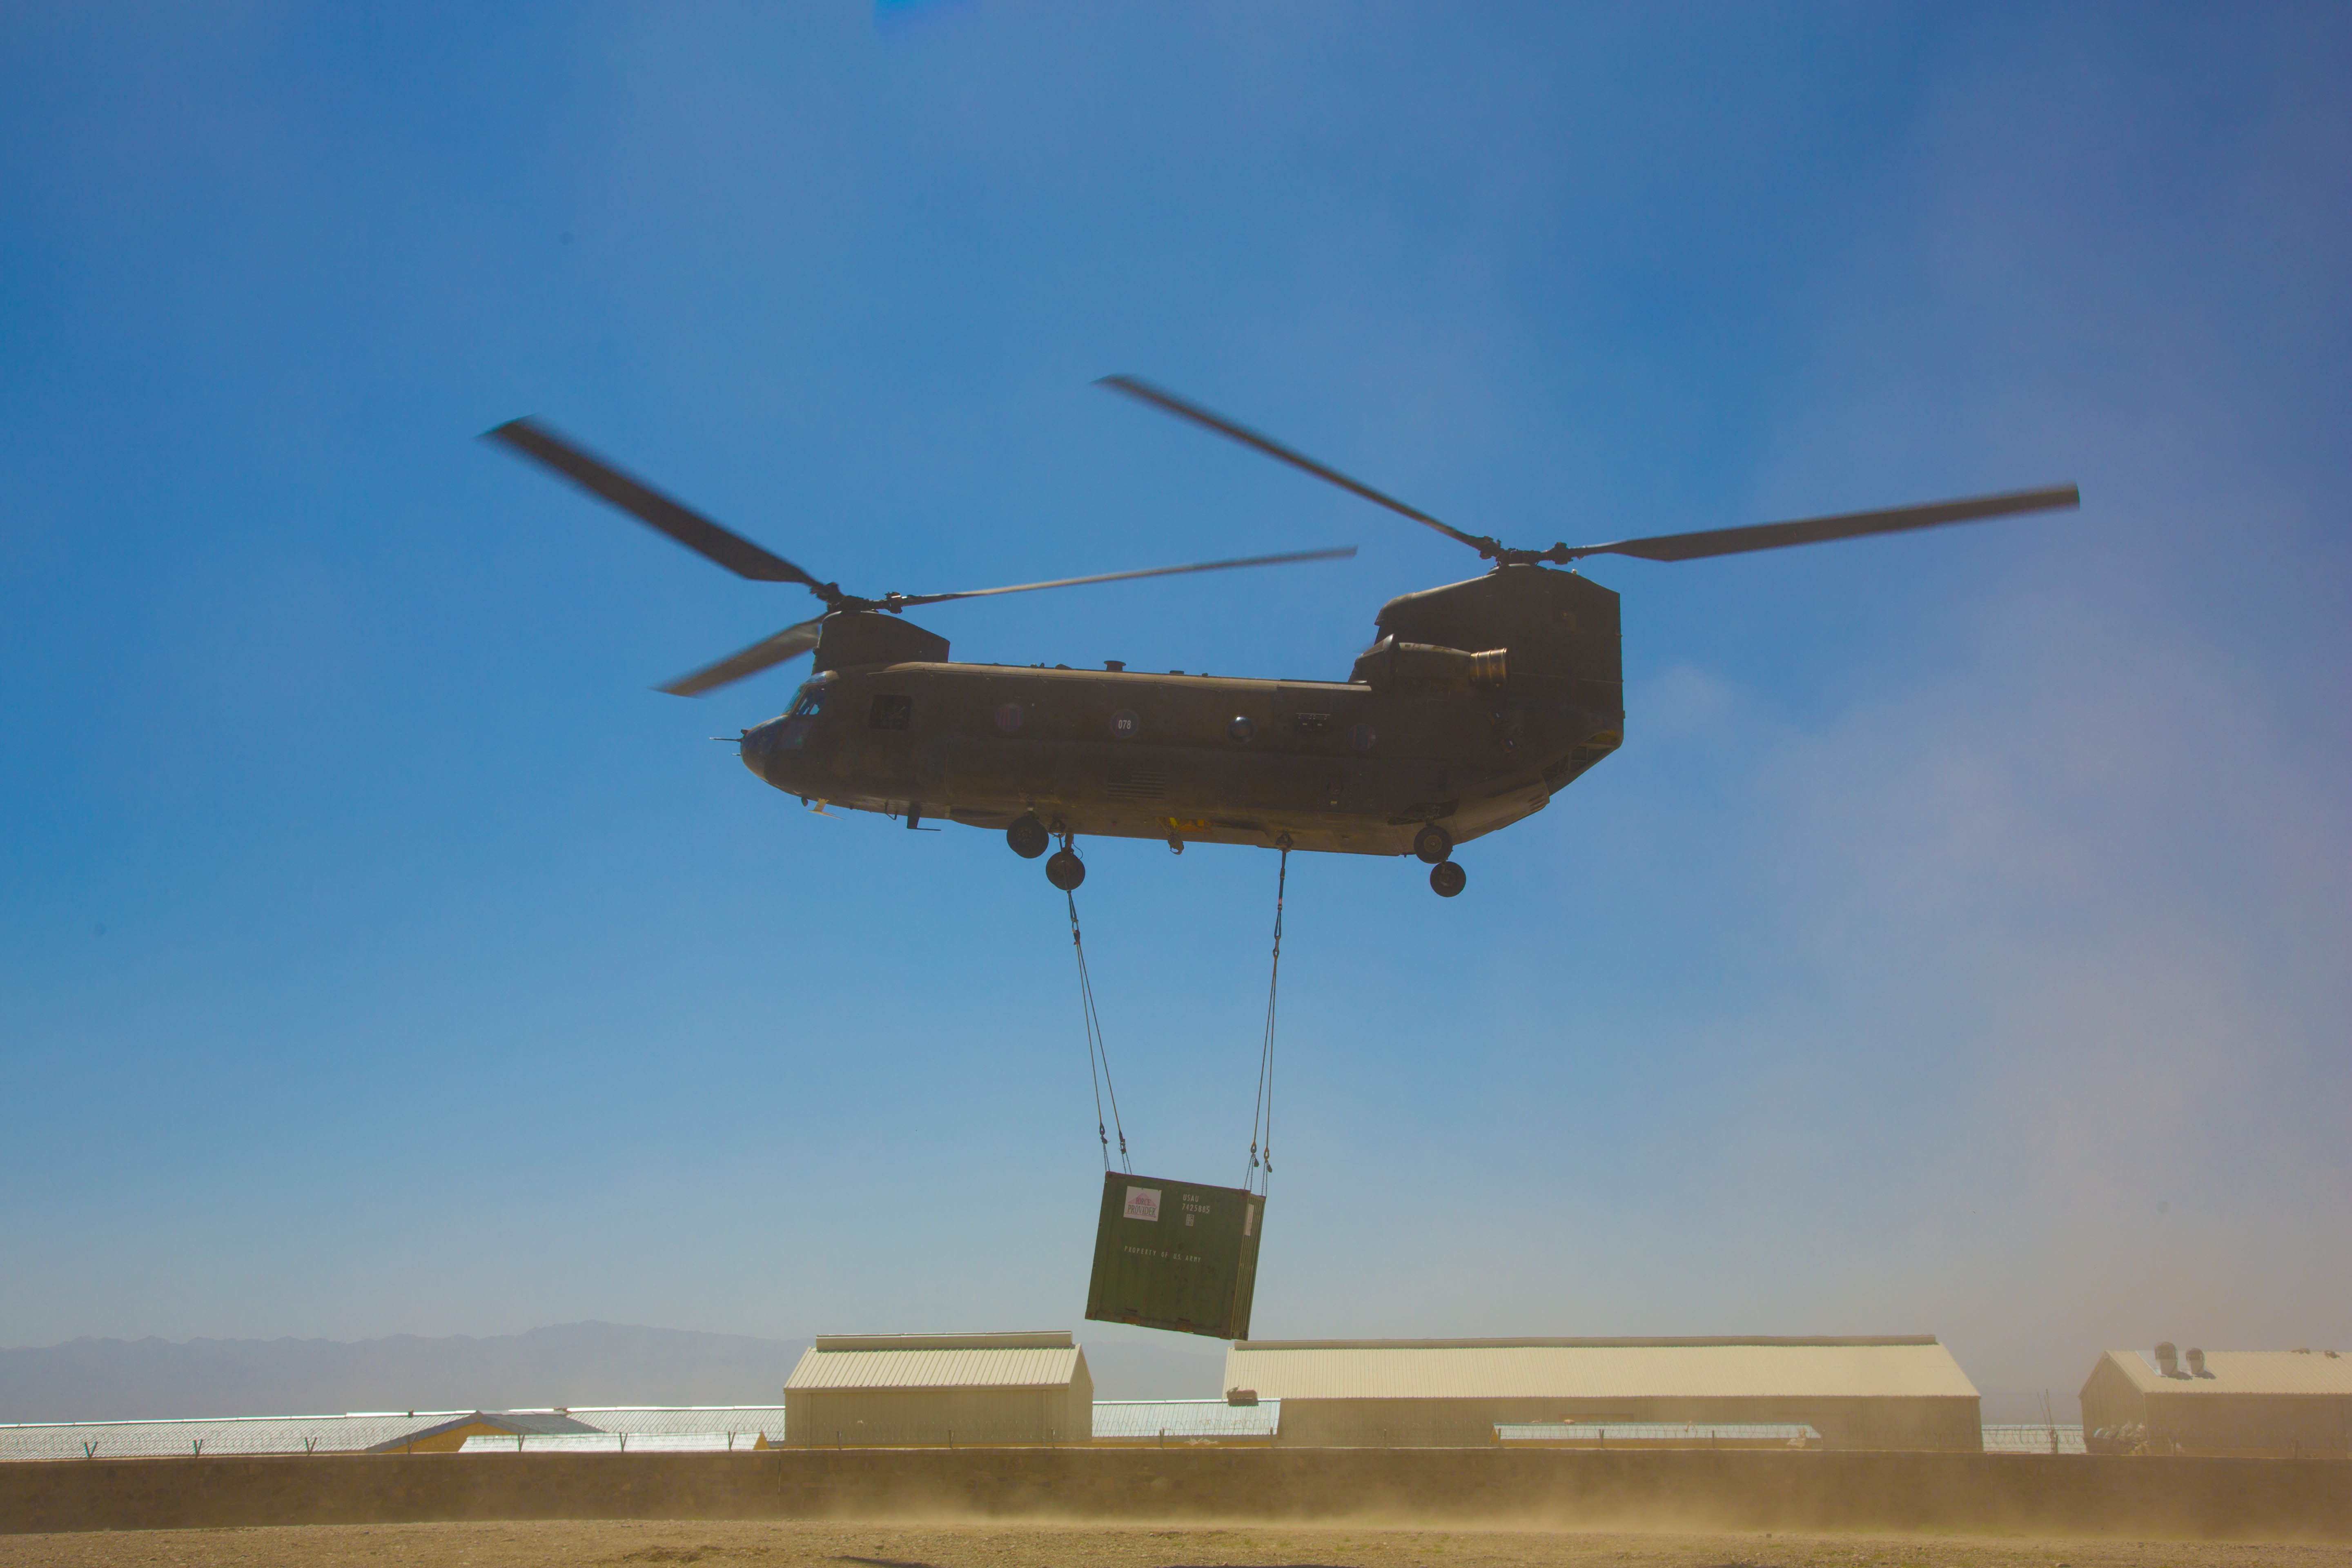 heavy lift helicopters with File A U S  Army Ch 47 Chinook Helicopter Lifts A Container Of Mortars For Transport May 27  2013  At Khair Kot Garrison In Paktika Province  Afghanistan 130527 A Nq567 056 on Seventh Raaf C 17 Delivered likewise 6138 New Raindance likewise File A U S  Army CH 47 Chinook helicopter lifts a container of mortars for transport May 27  2013  at Khair Kot Garrison in Paktika province  Afghanistan 130527 A NQ567 056 further 60125 2Ccity moreover 27041 Vertolet Bell Uh 1y Venom.